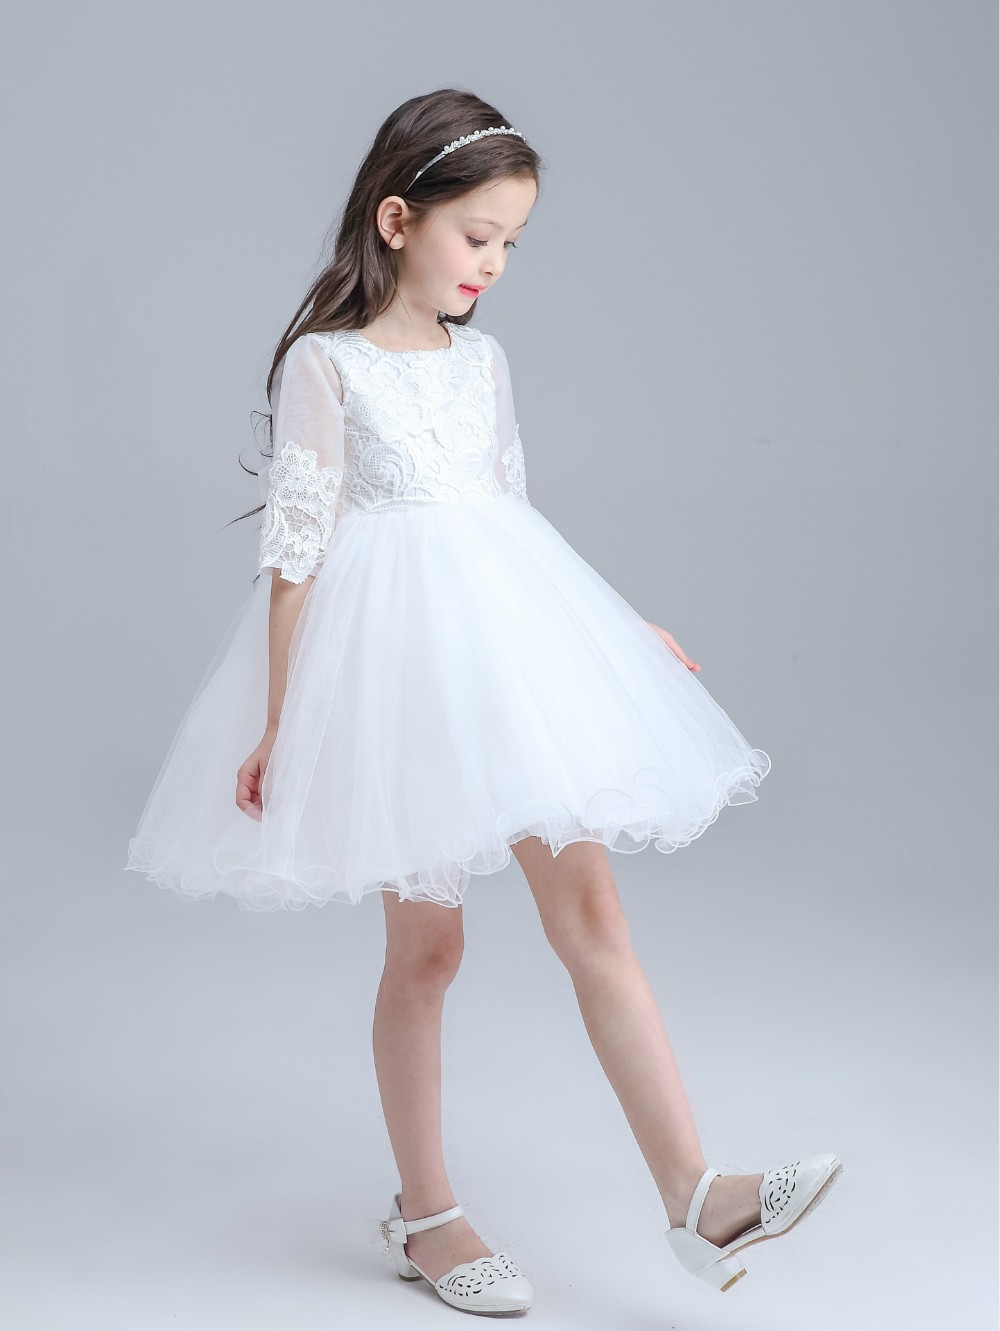 Spring White Princess Children Flower Girl Dress For Weddings Kid